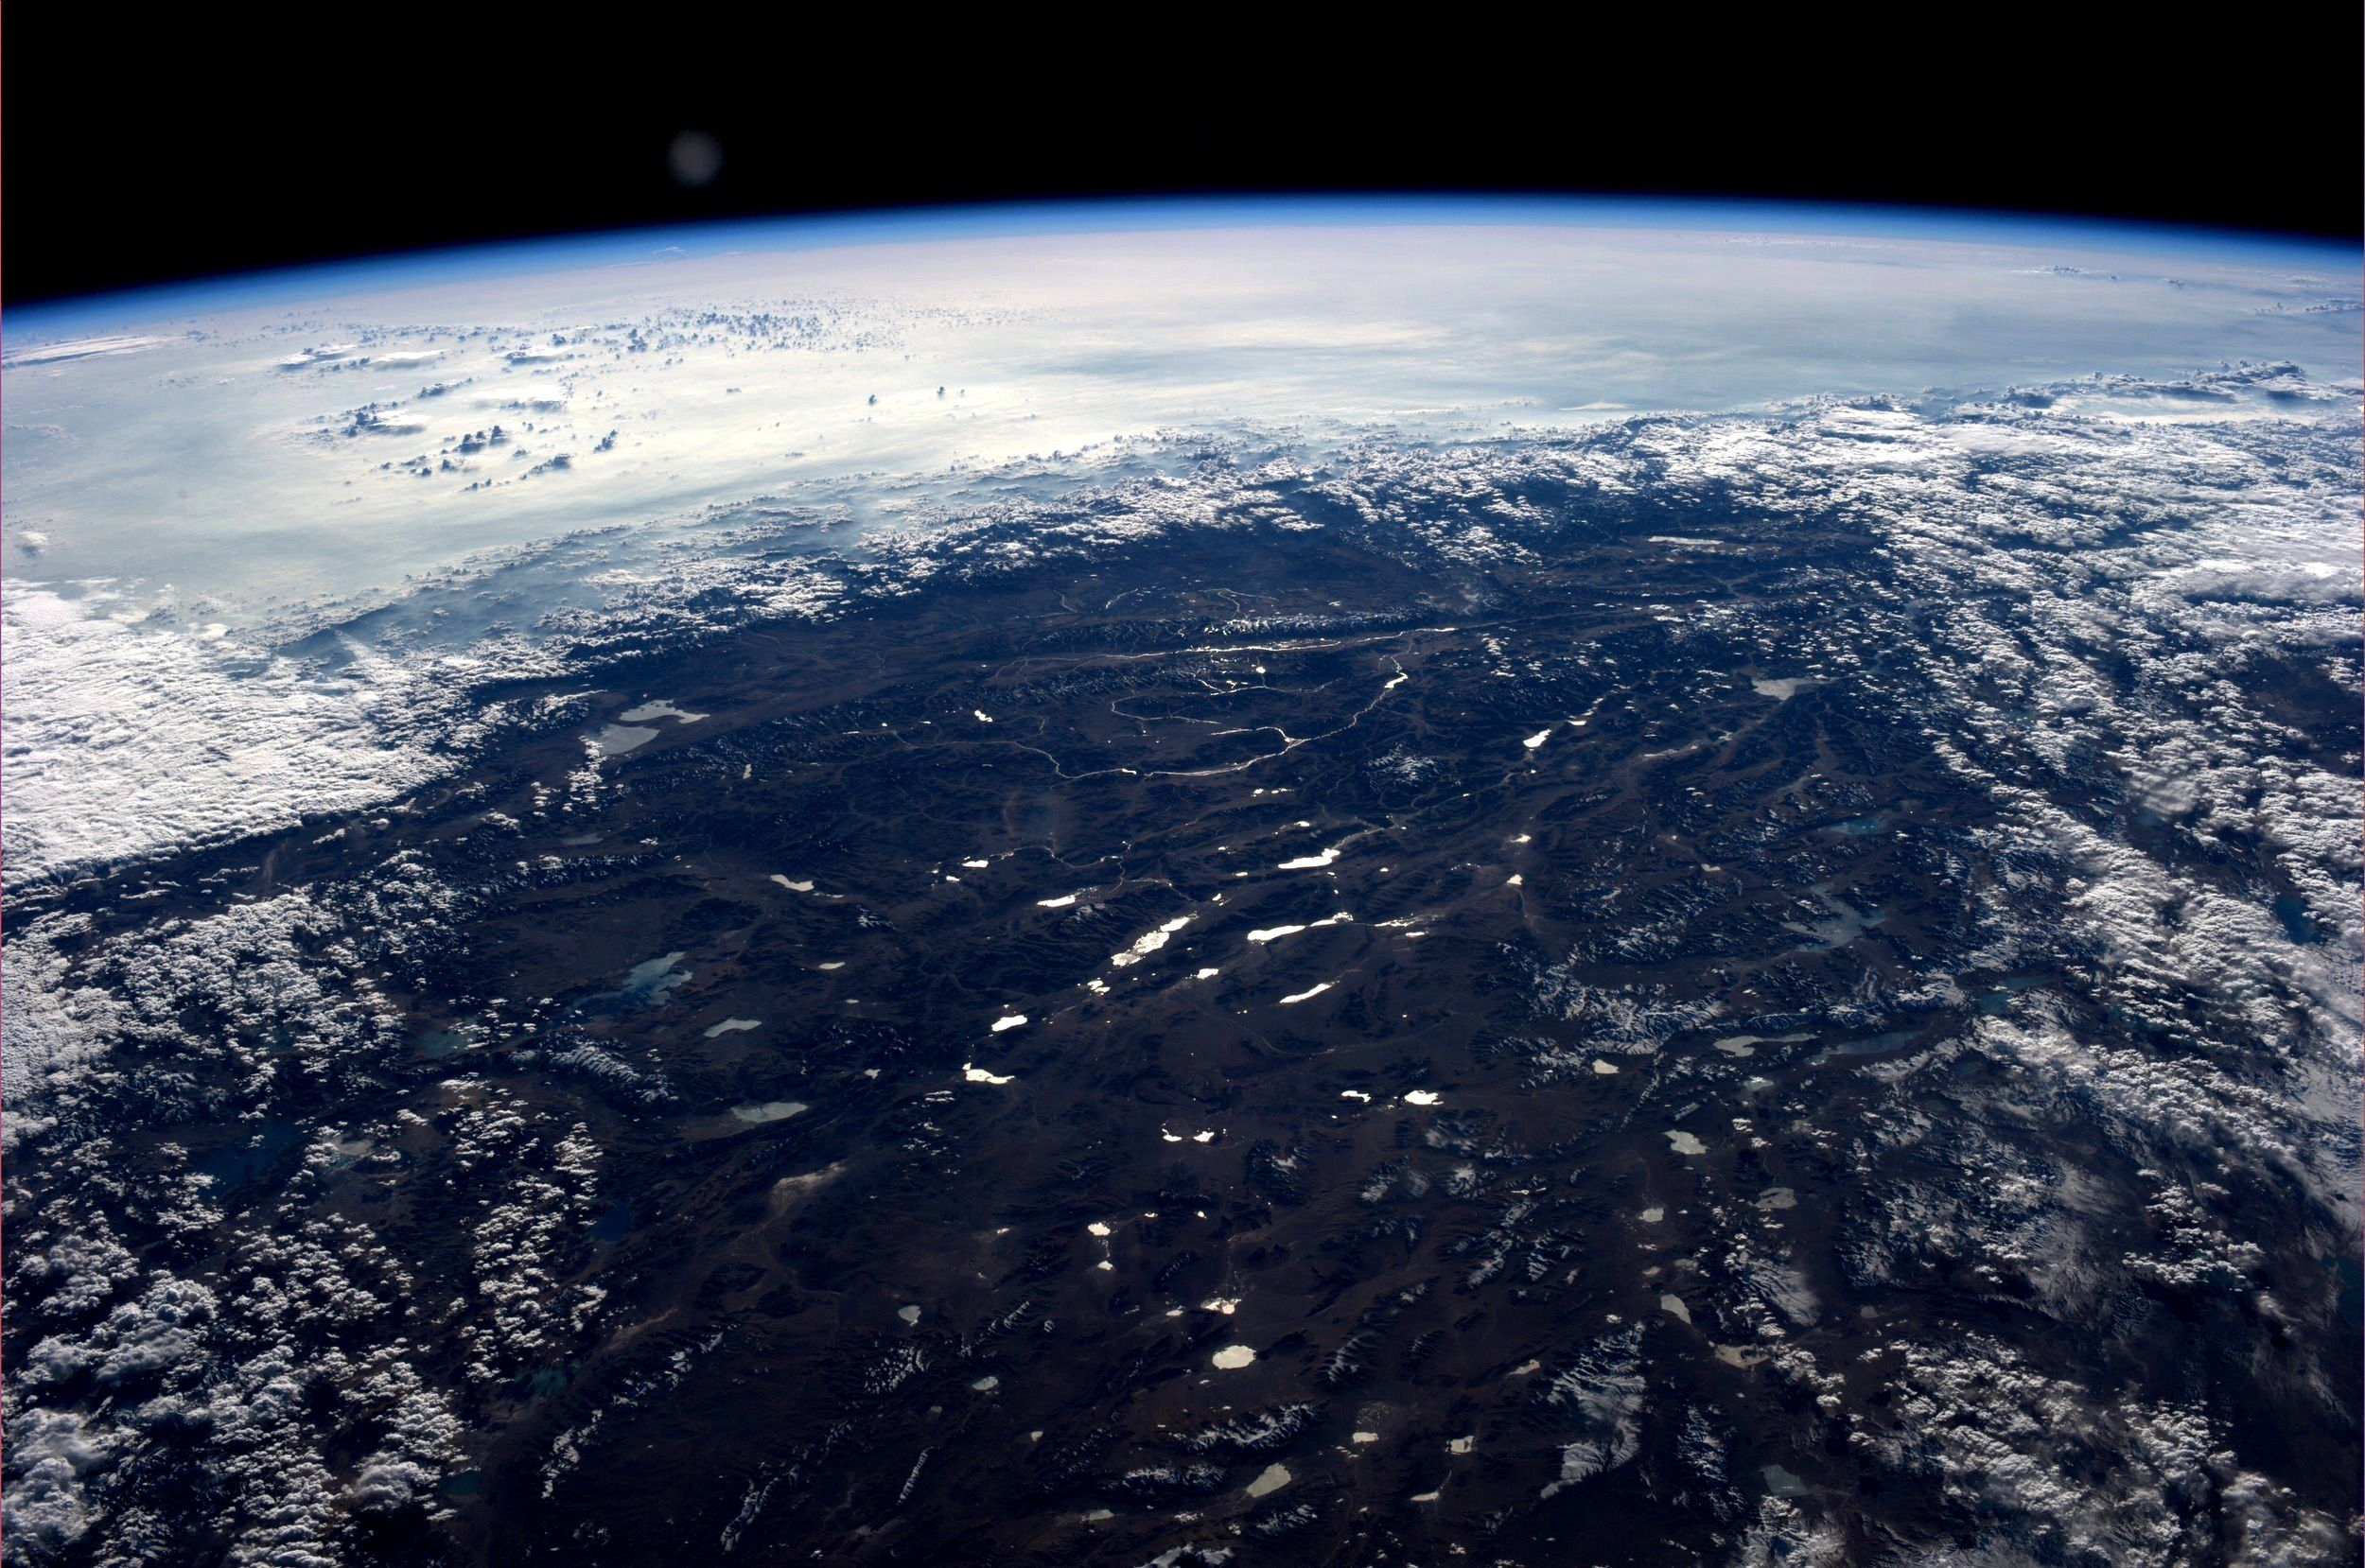 The Tibetan Plateau Taken October 14 2013 Kn From Space Amazing Woman Astronaut Sharing Her Pictures On P Earth From Space Space Pictures Earth Pictures